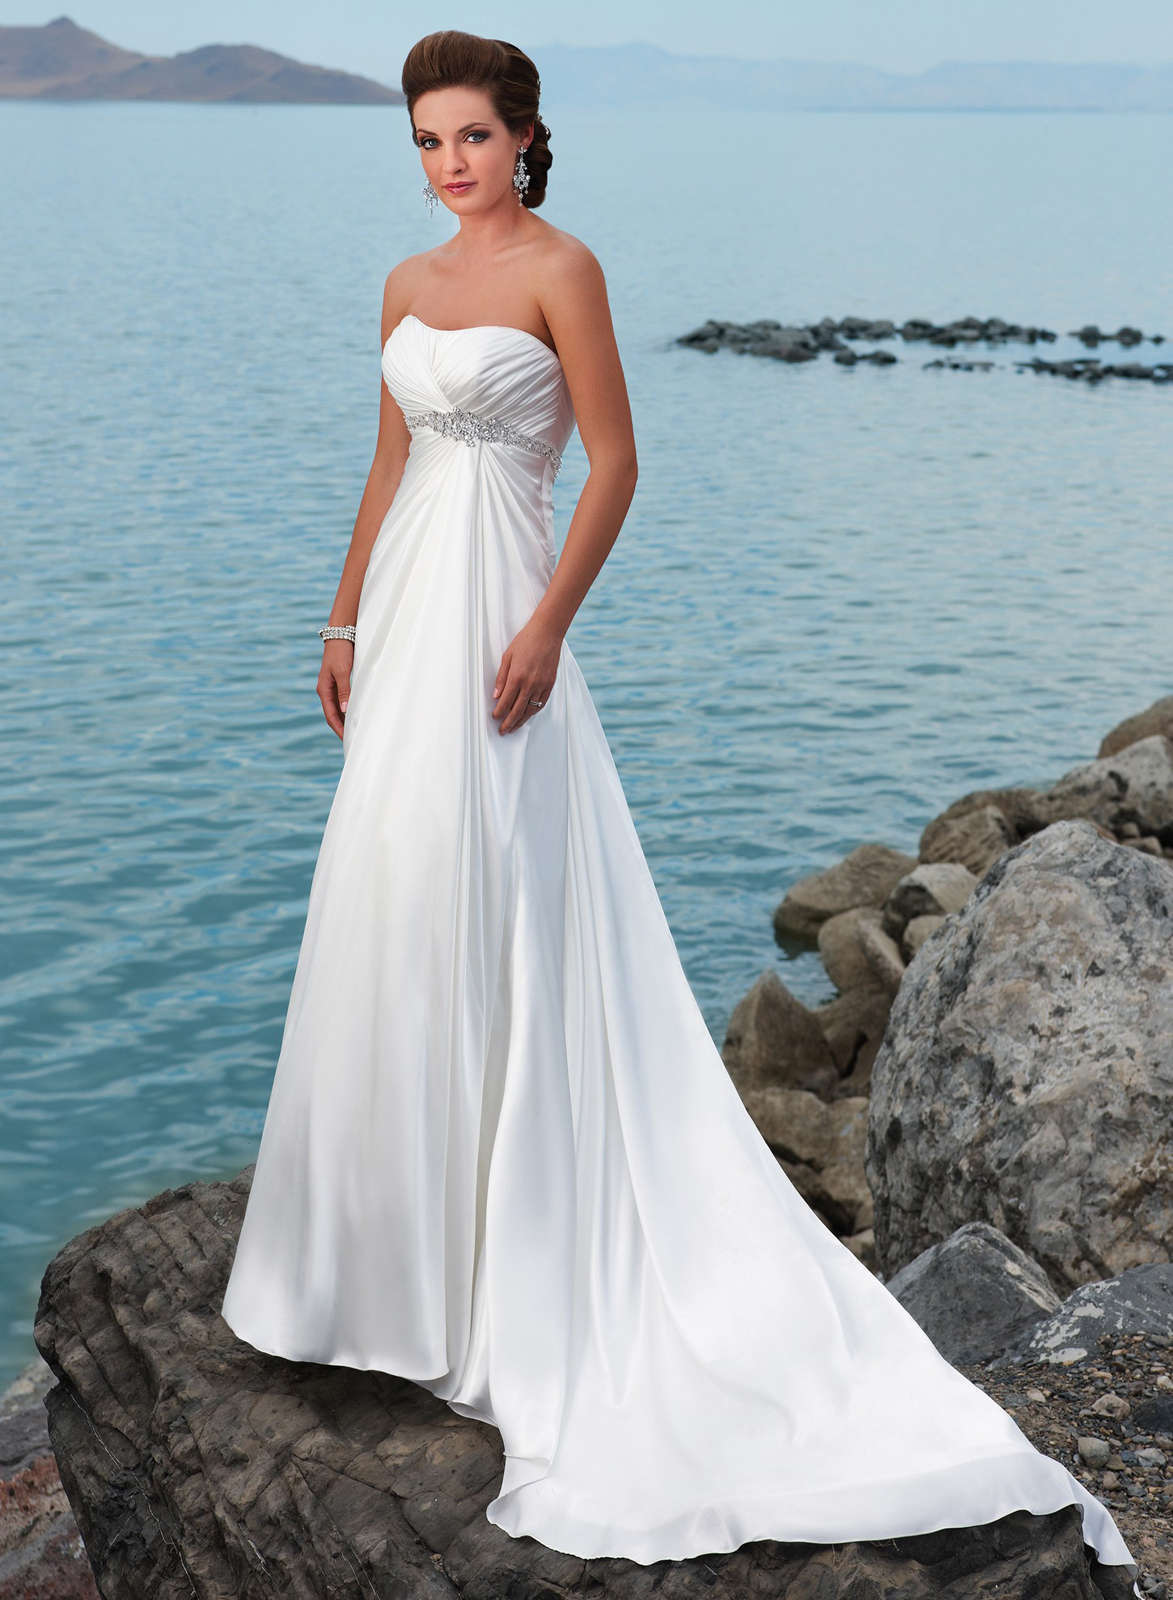 Stylish Beach Wedding Dresses : Looking sexy and fantastic with strapless beach wedding